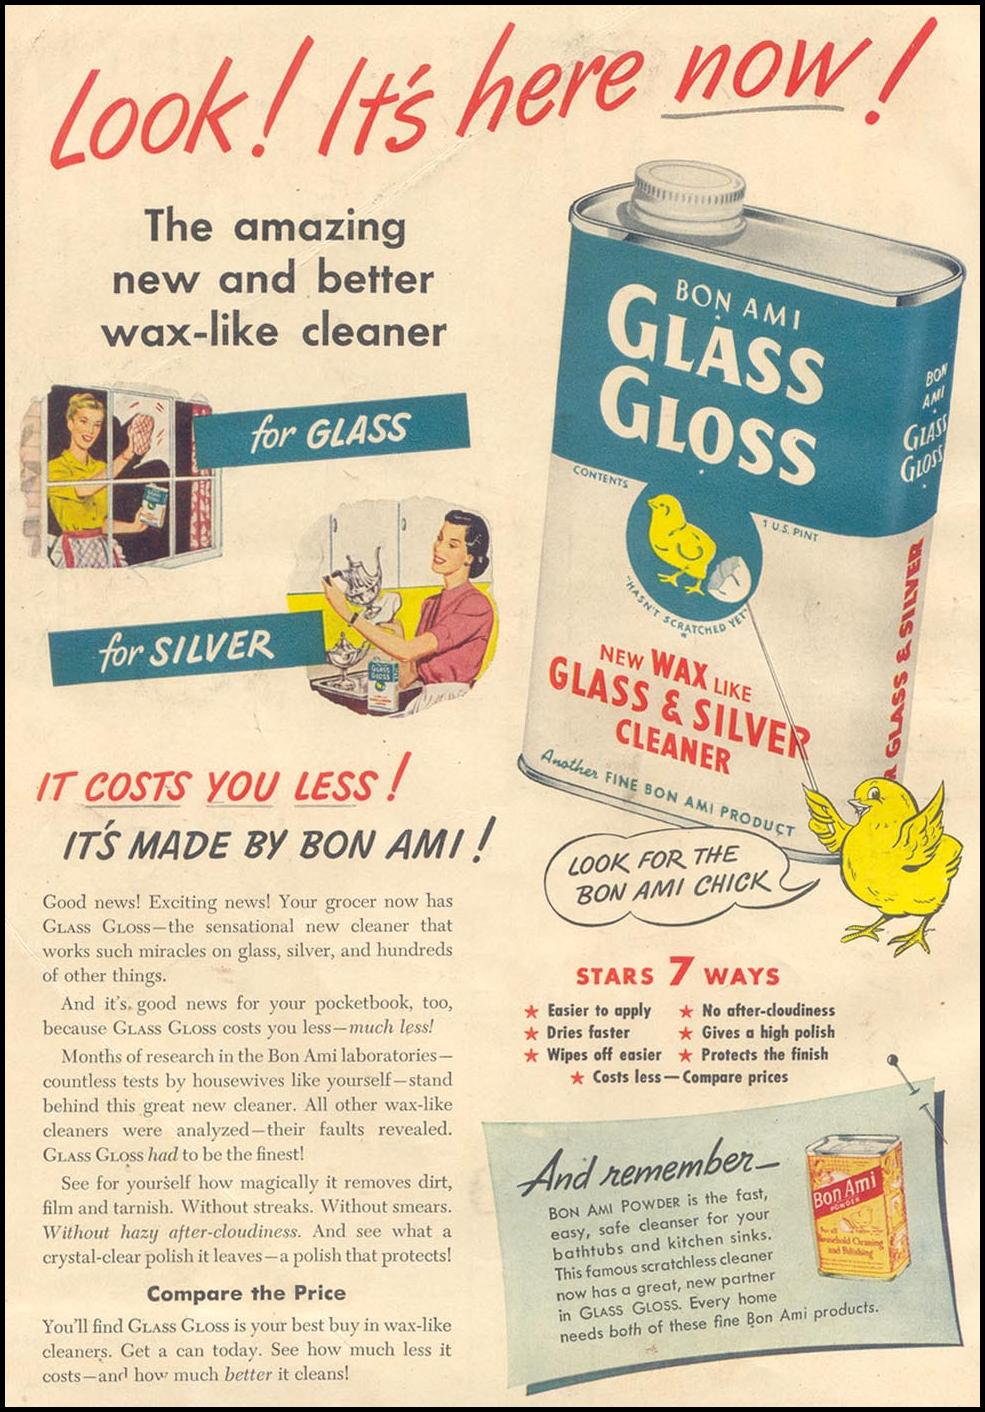 BON AMI GLASS GLOSS GOOD HOUSEKEEPING 07/01/1949 INSIDE FRONT